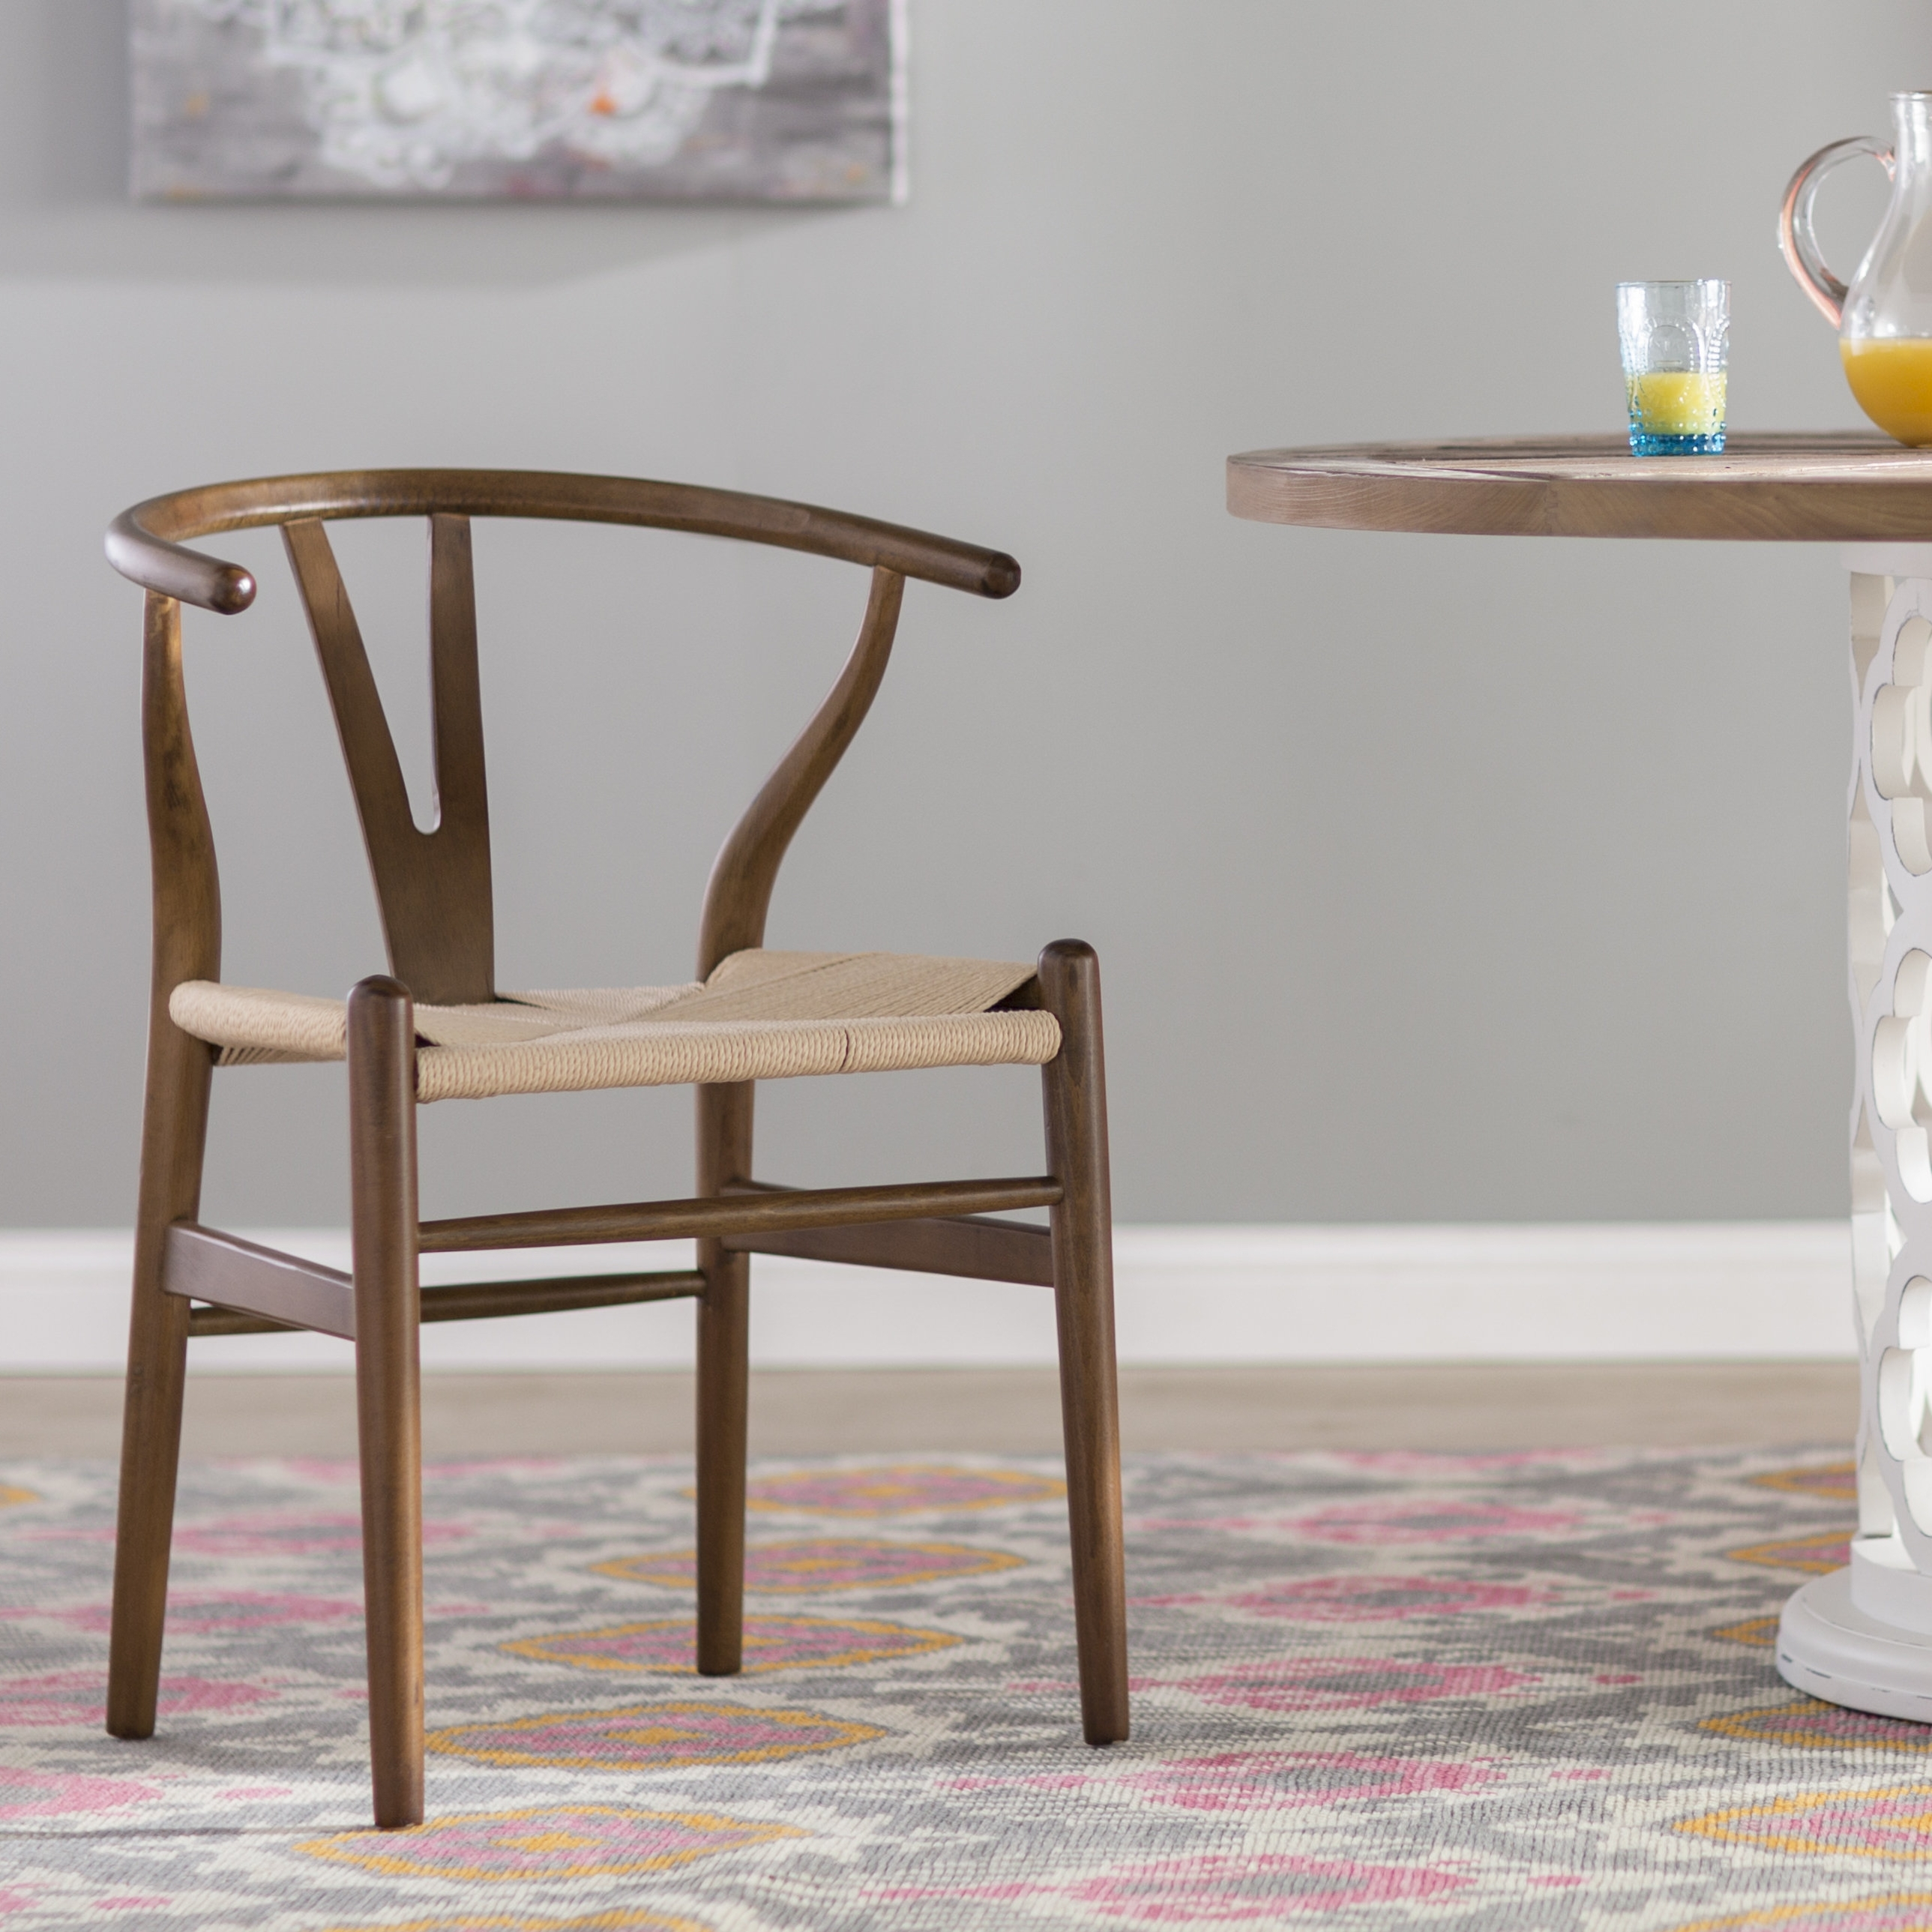 Popular Mistana Dayanara Solid Wood Dining Chair & Reviews (Gallery 25 of 25)